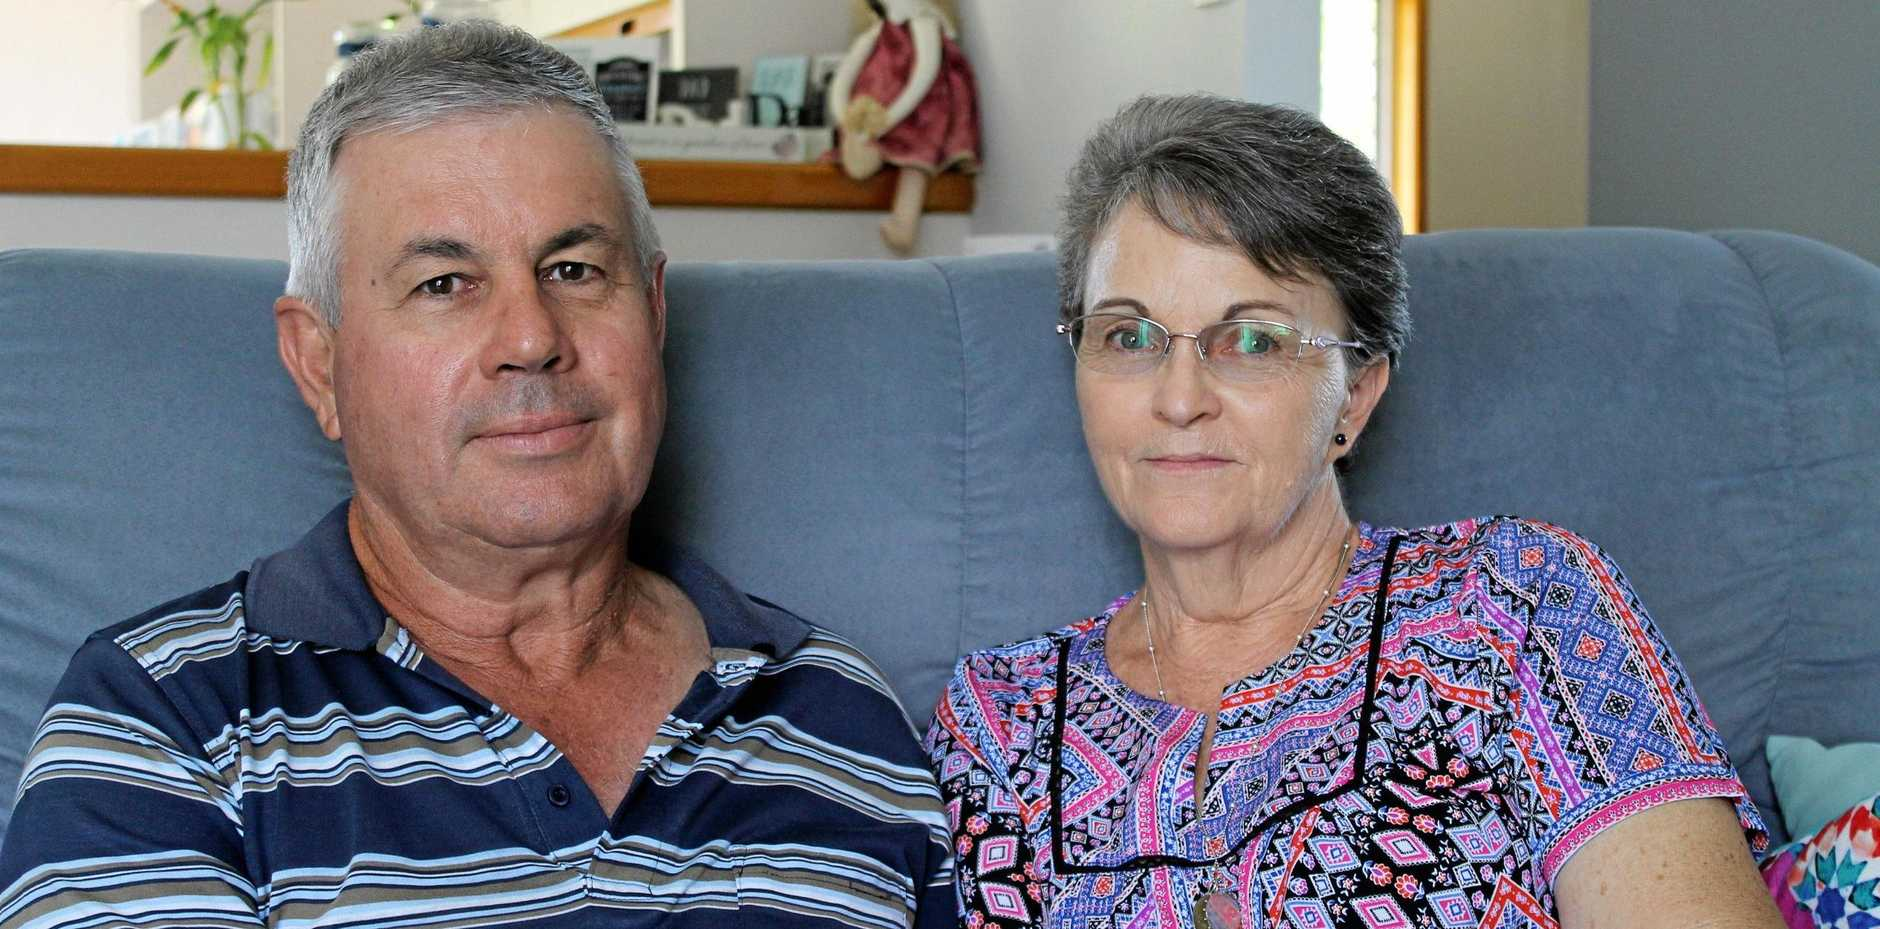 Finding Tim Pullen is 'our lifelong wish' | Daily Mercury